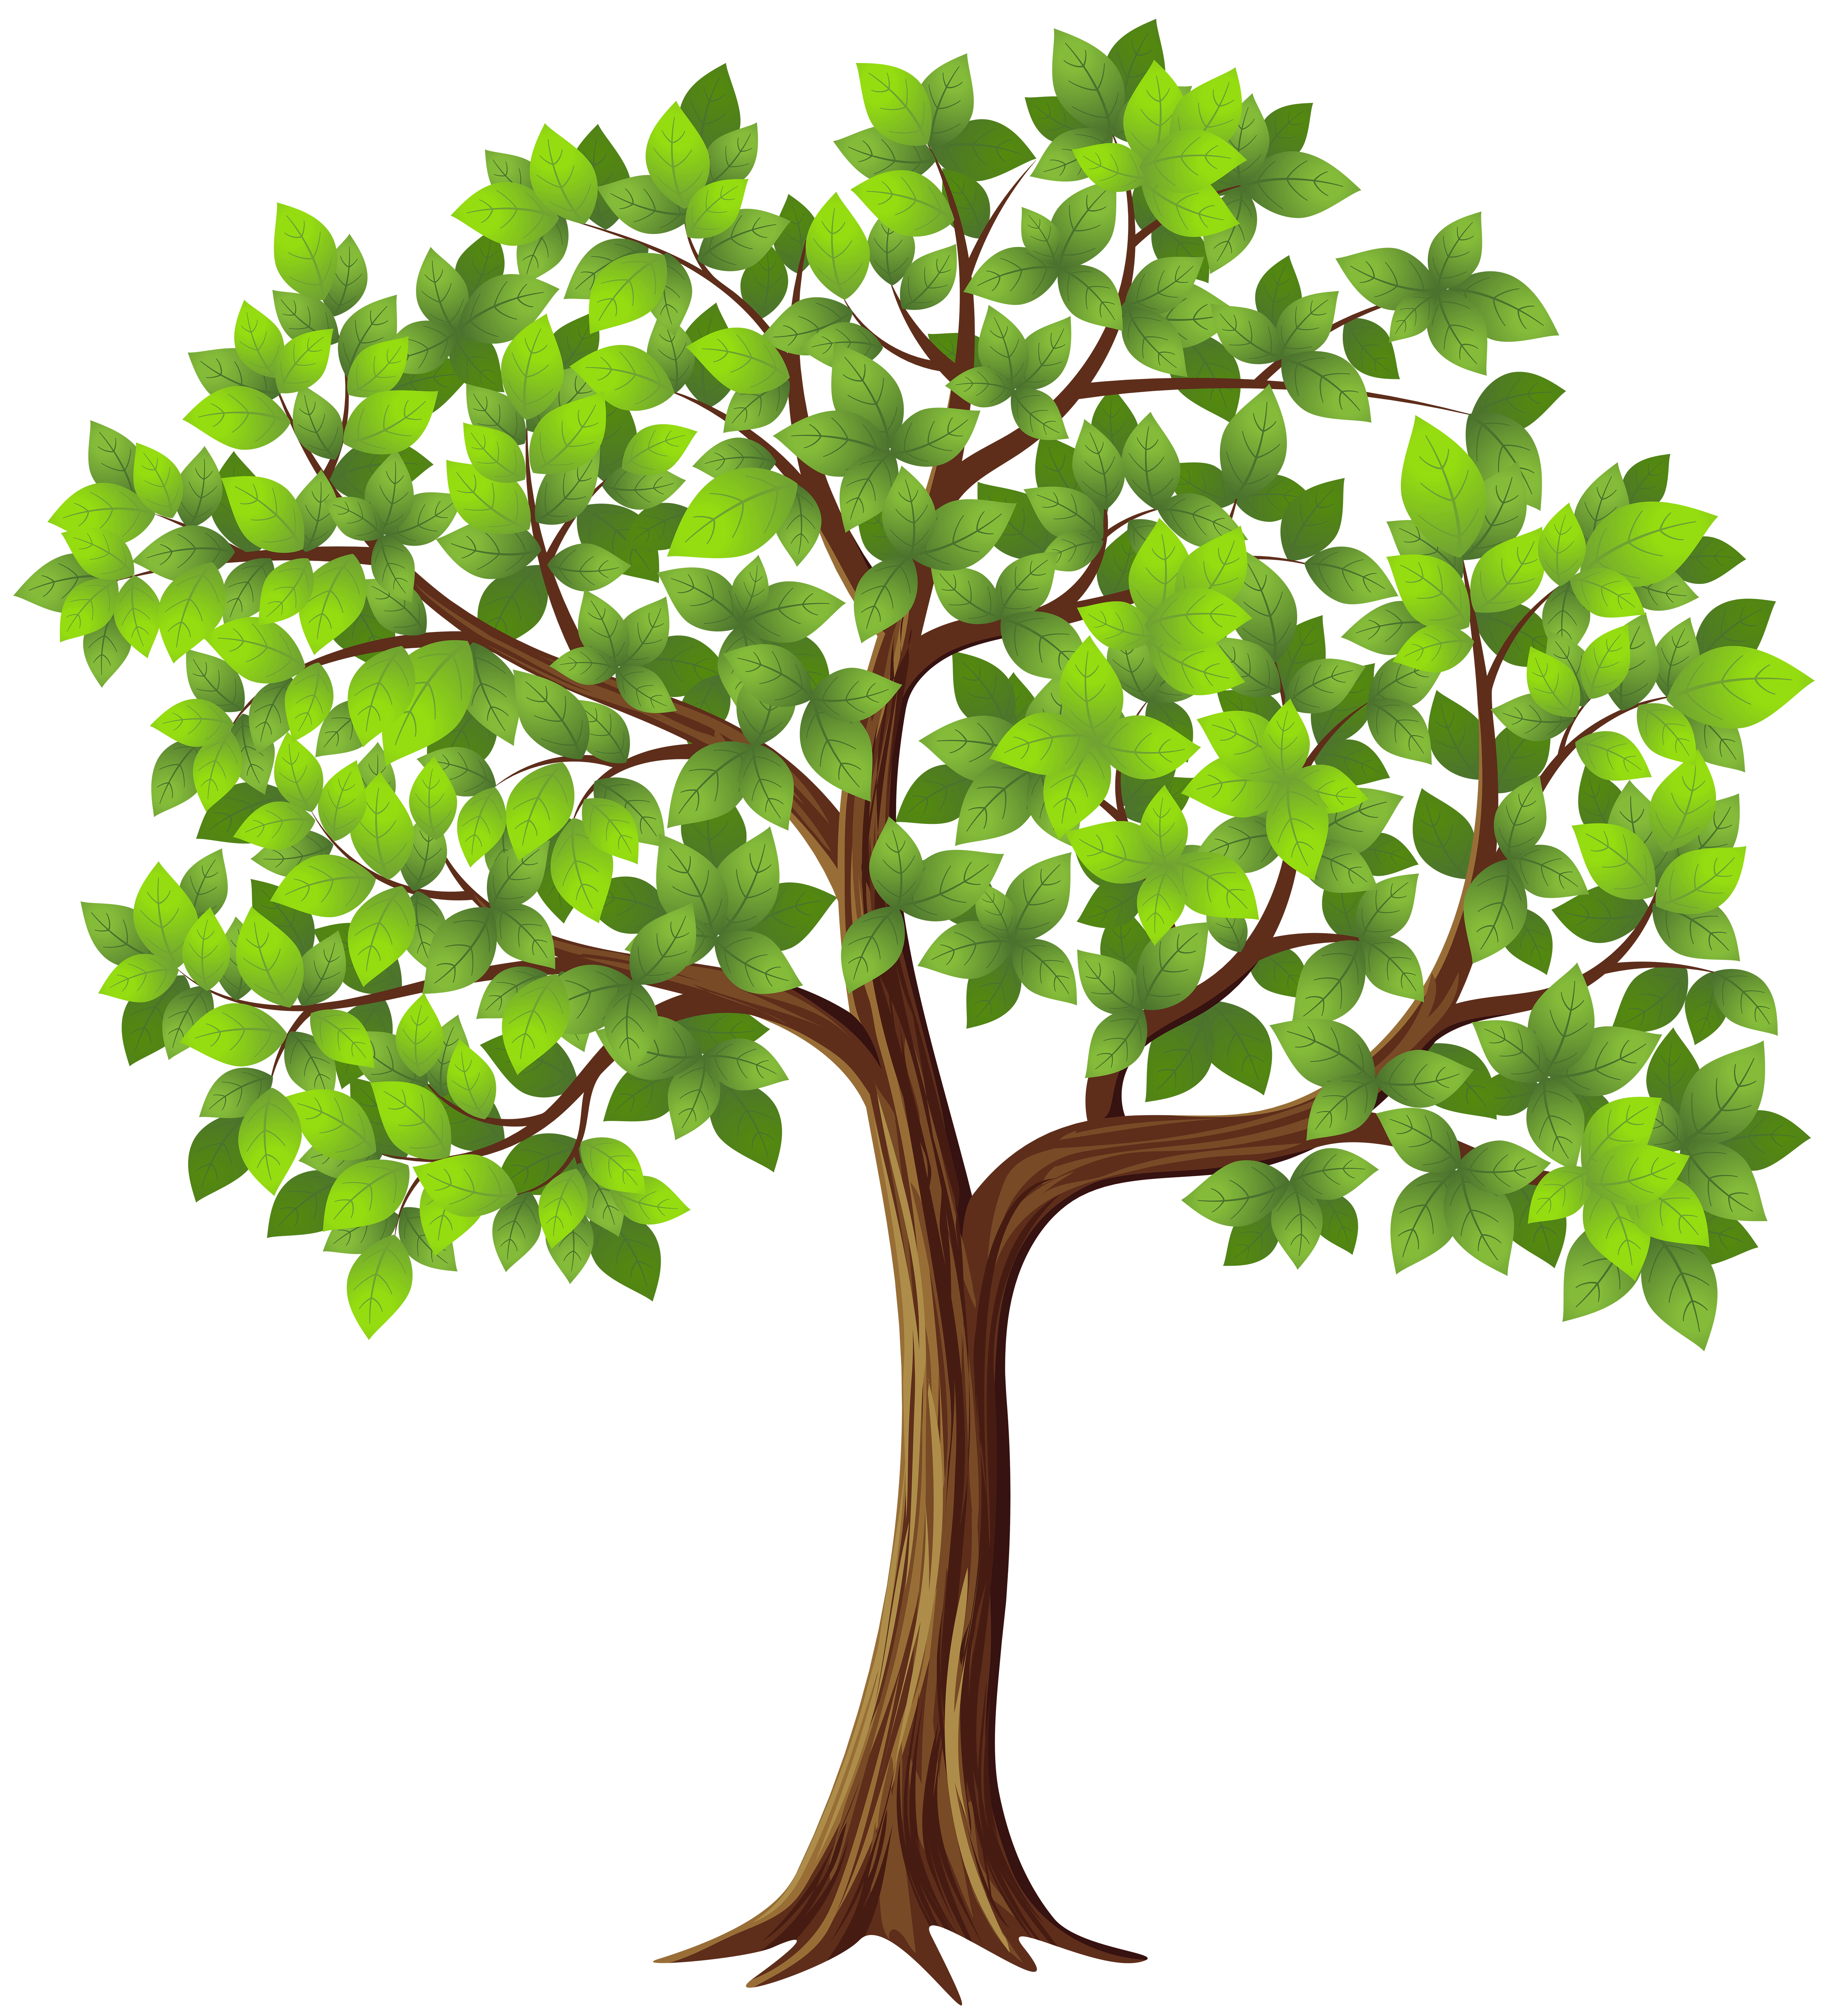 Tree png transparent.